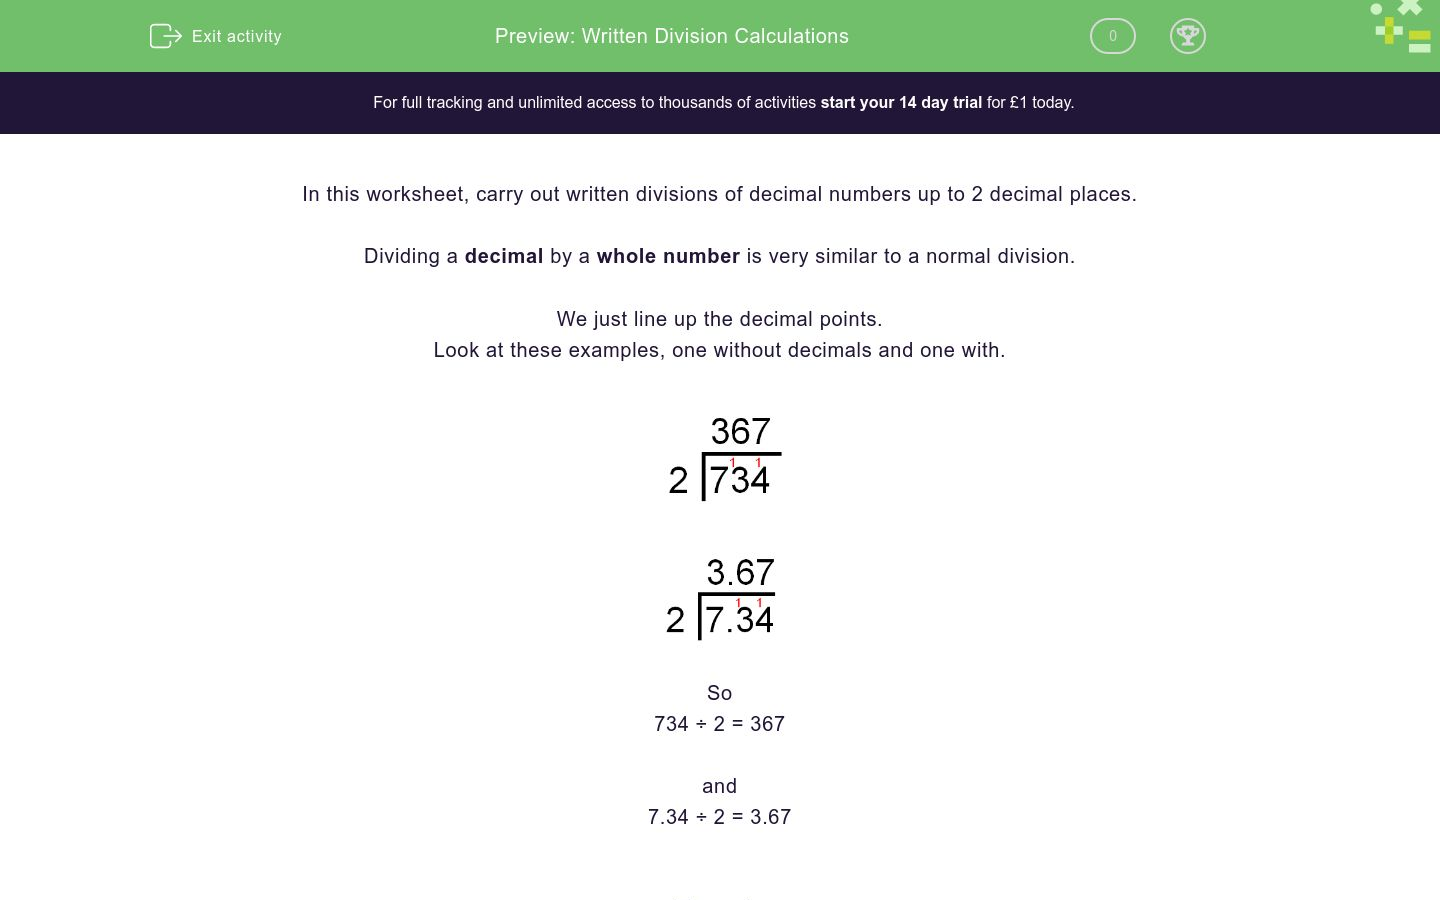 'Written Division Calculations' worksheet